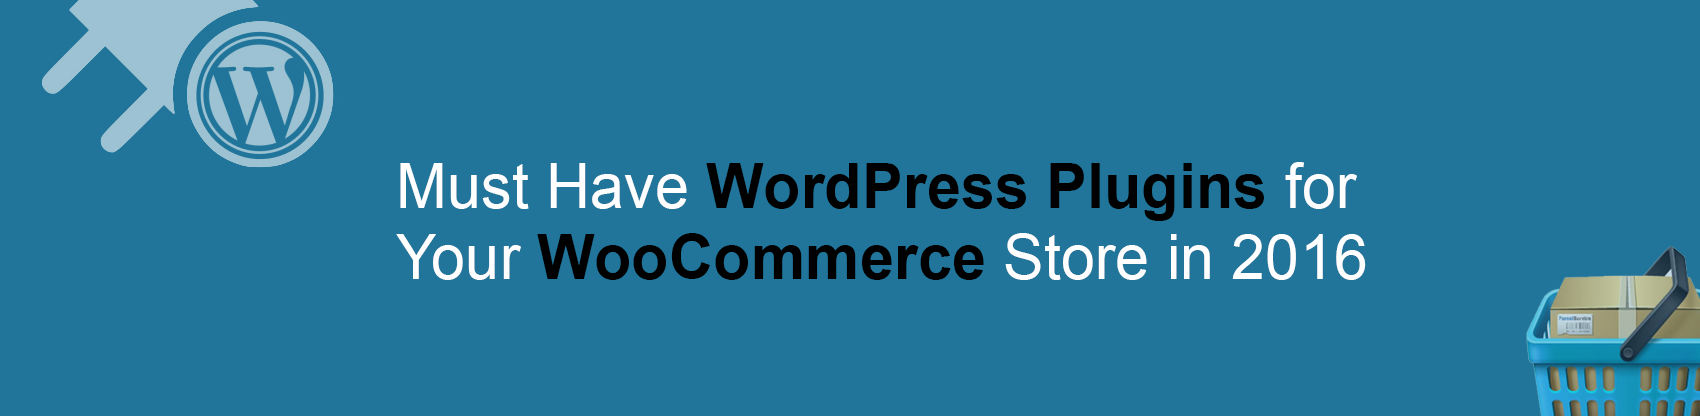 Must Have WordPress Plugins for Your WooCommerce Store in 2016